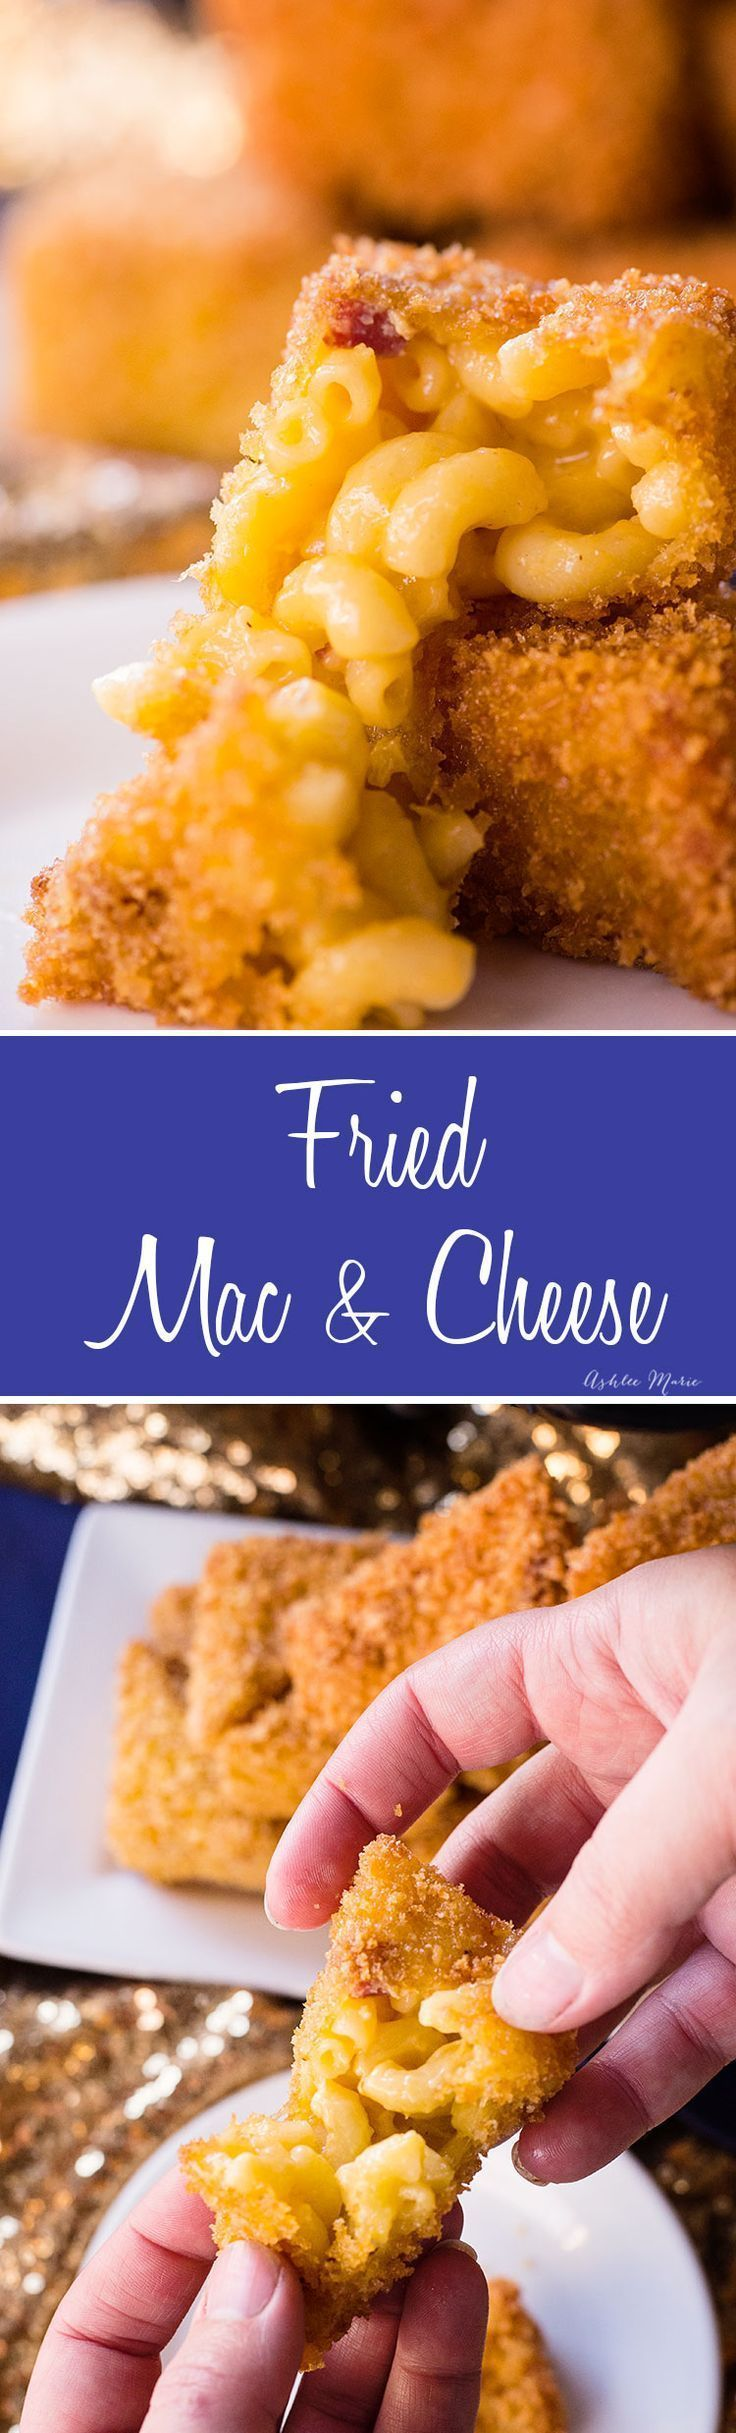 make your own fried macaroni and cheese with diced summer sausage for an amazing flavor! it's an easy appetizer that everyone will love at your next party! #ad @jvilllesausage